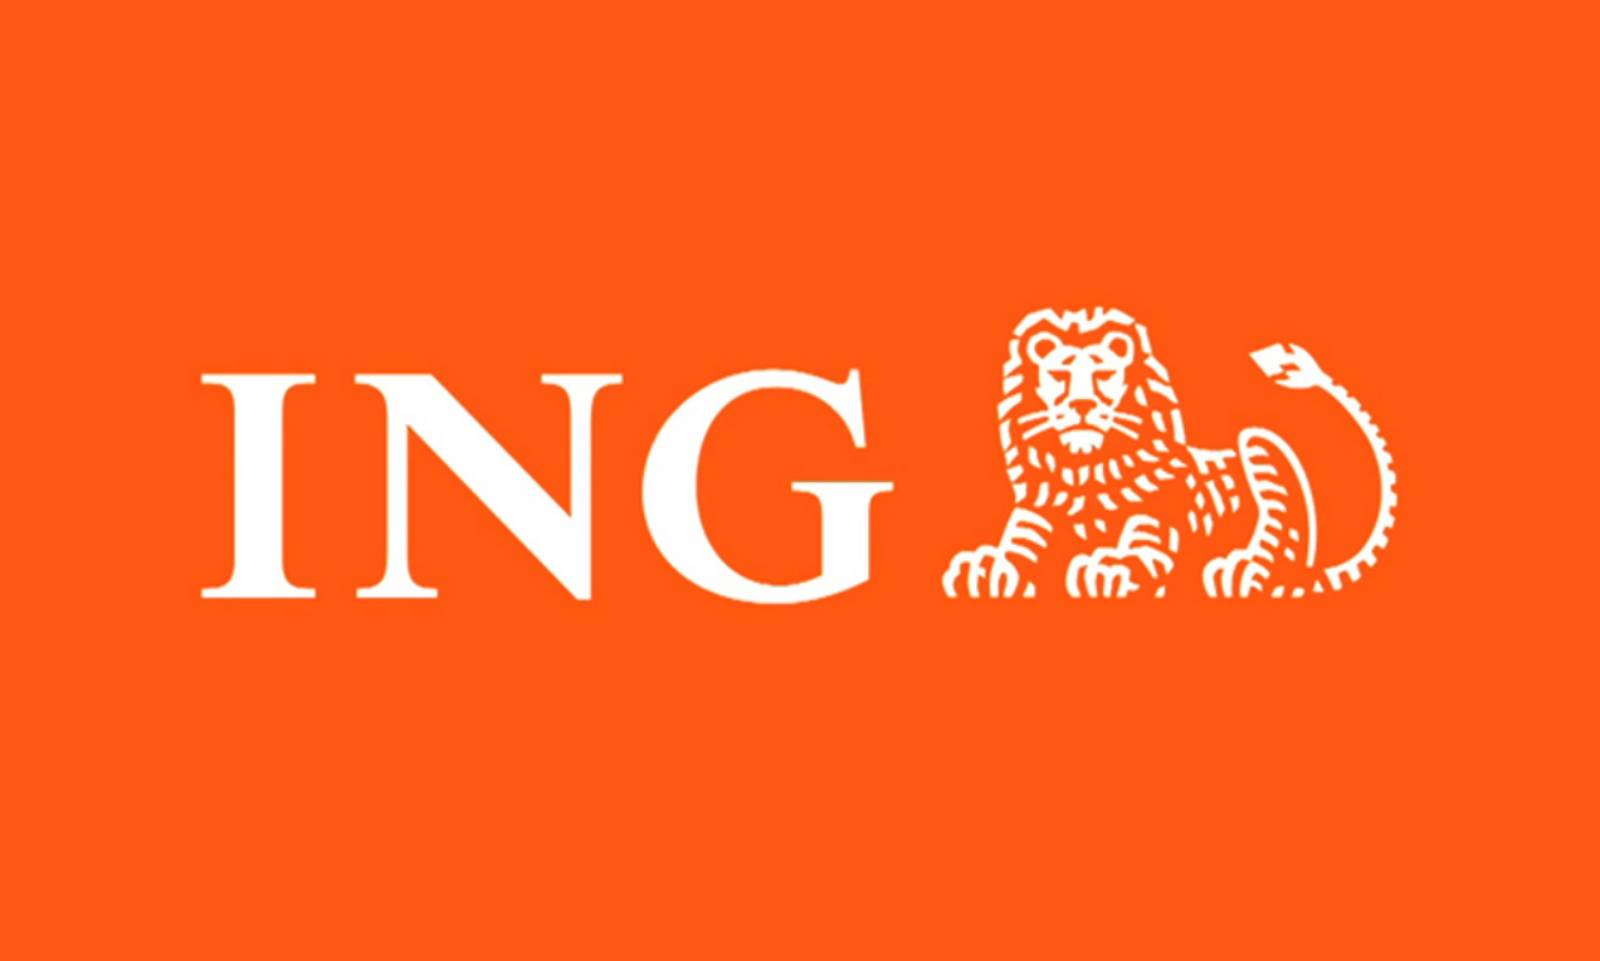 ING Bank comportament